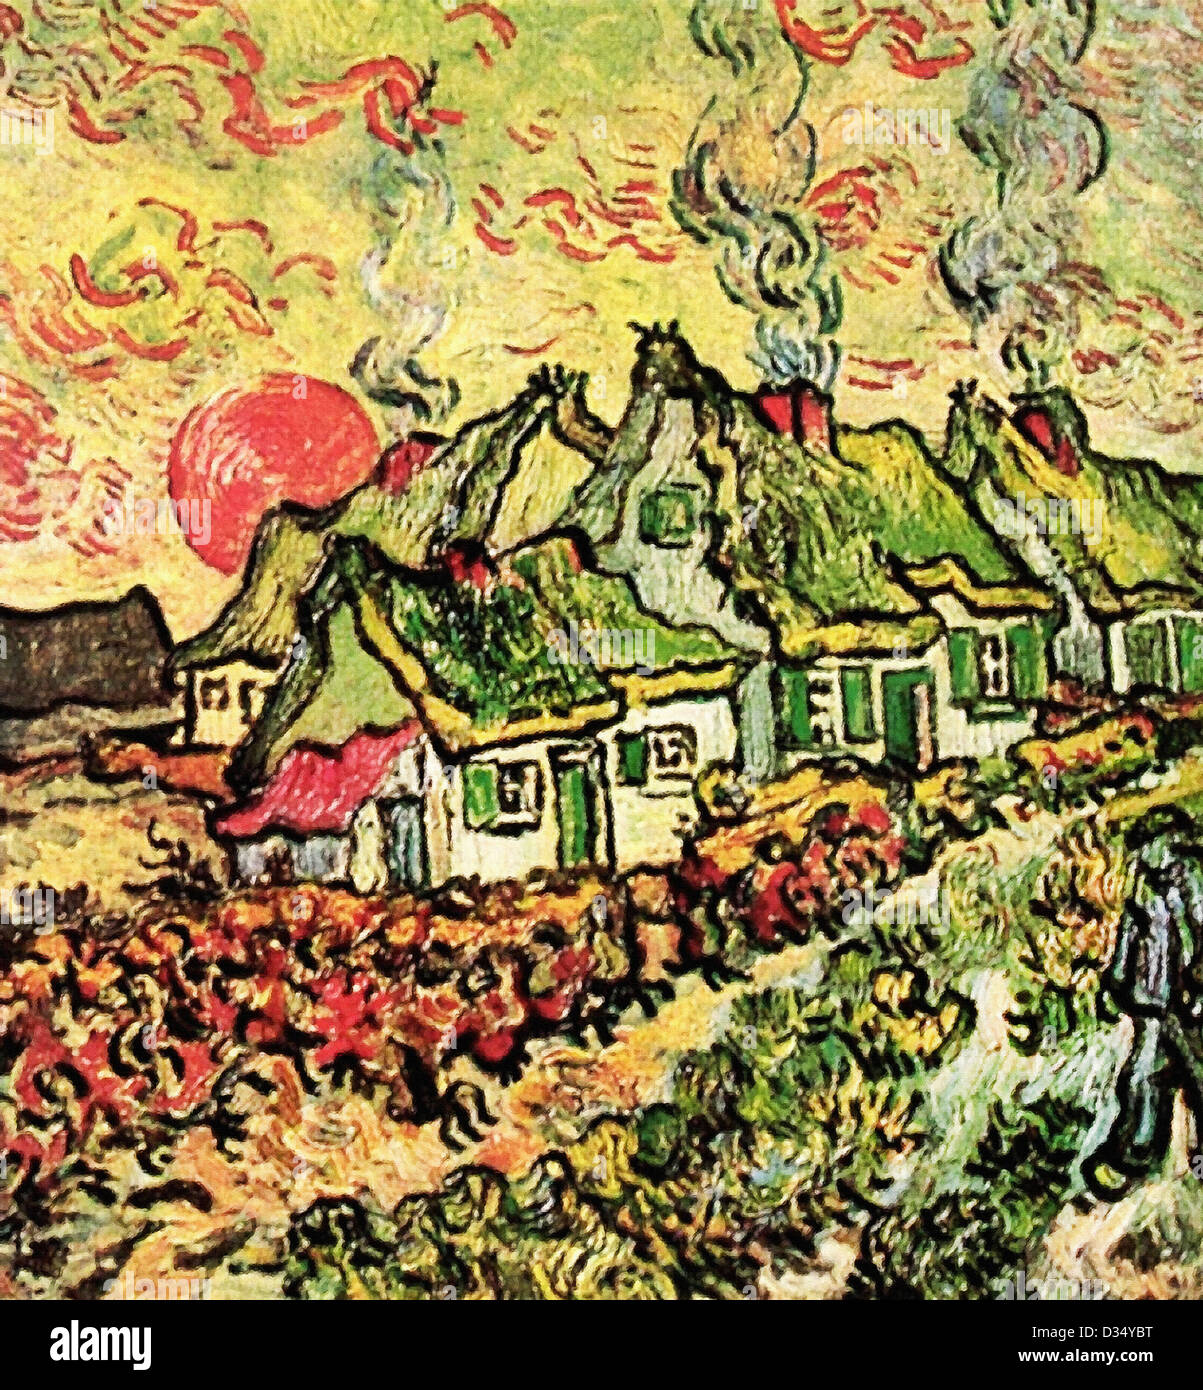 Vincent van Gogh, Cottages Reminiscence of the North. 1890. Post-Impressionism. Oil on canvas. Creation:Saint-Rémy - Stock Image